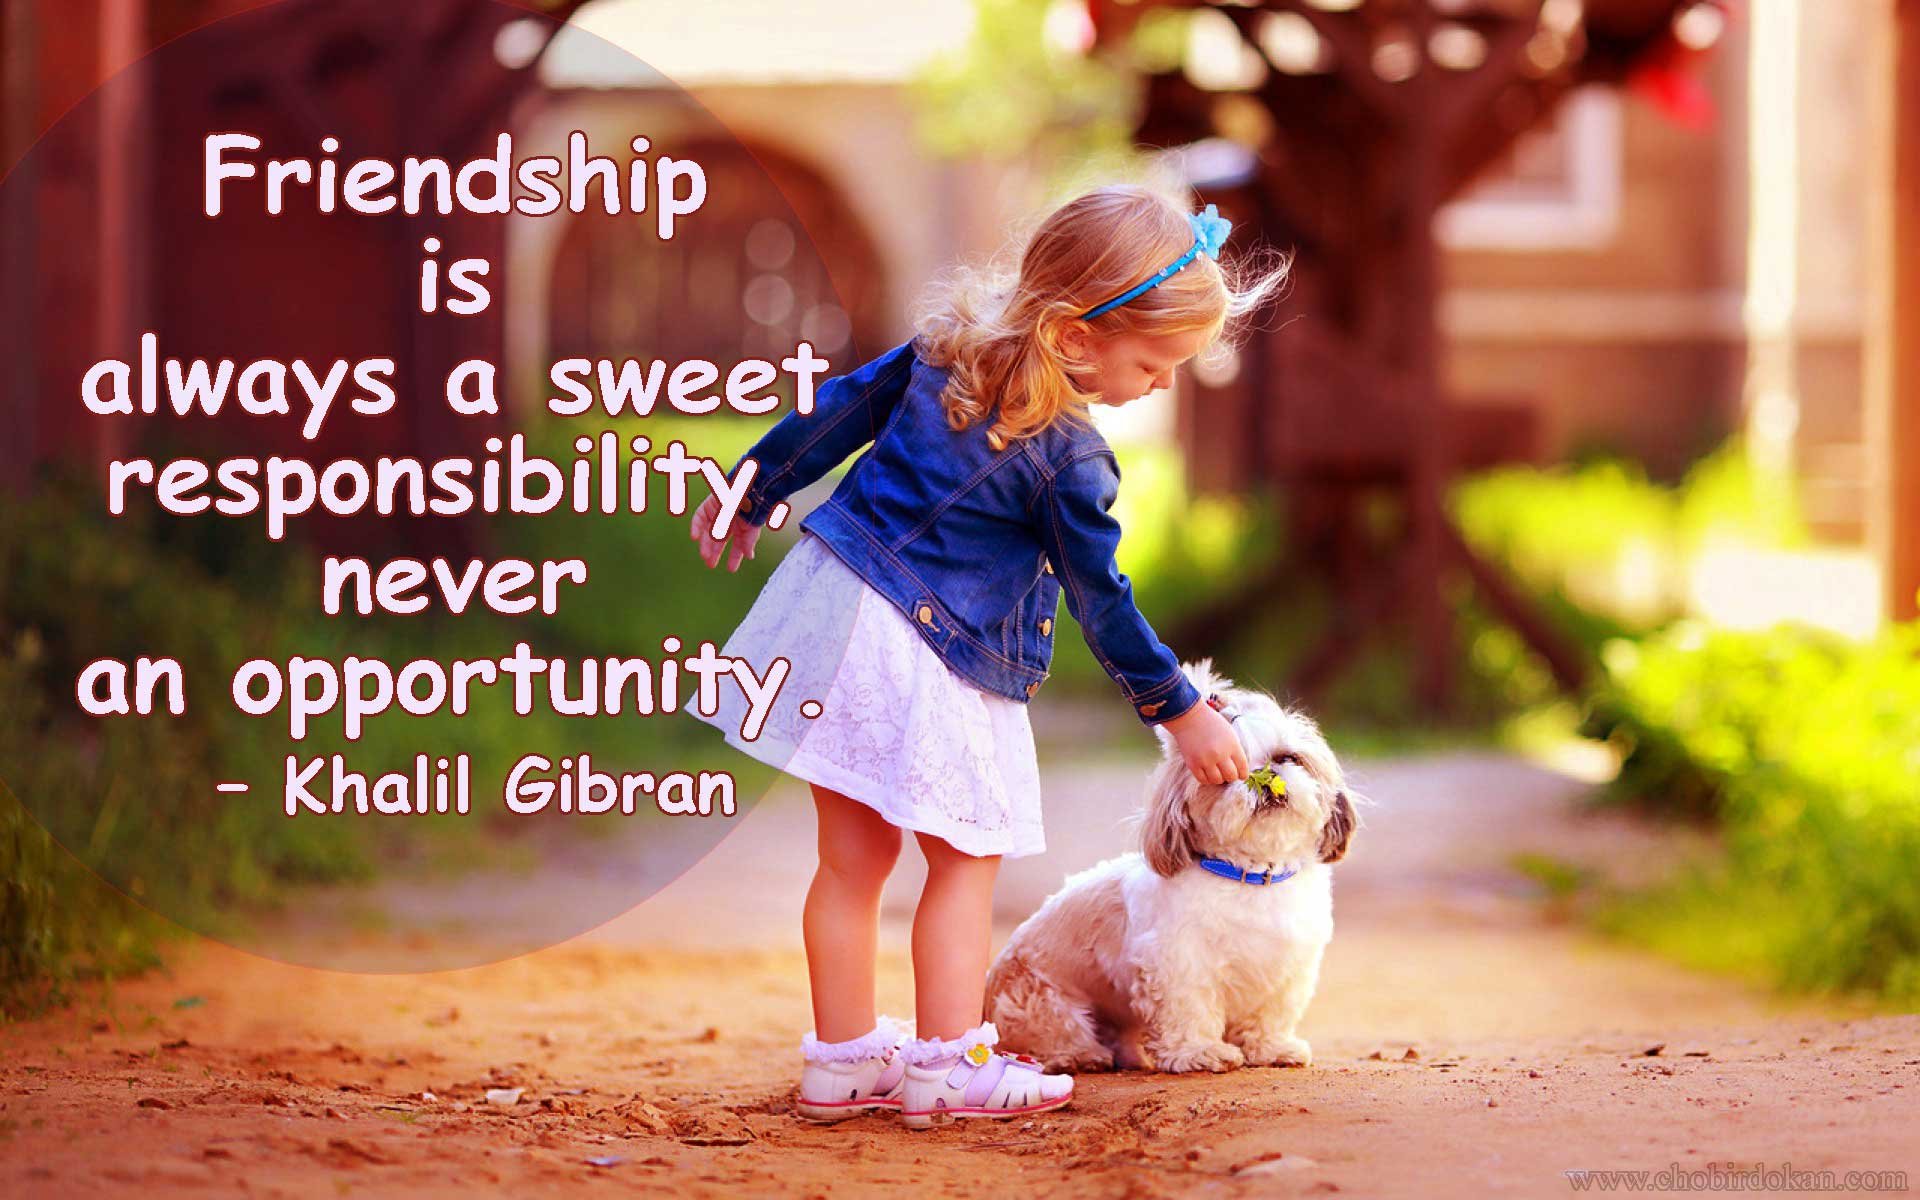 40+ Cute Friendship Quotes With Images  Friendship wallpapers -Chobirdokan